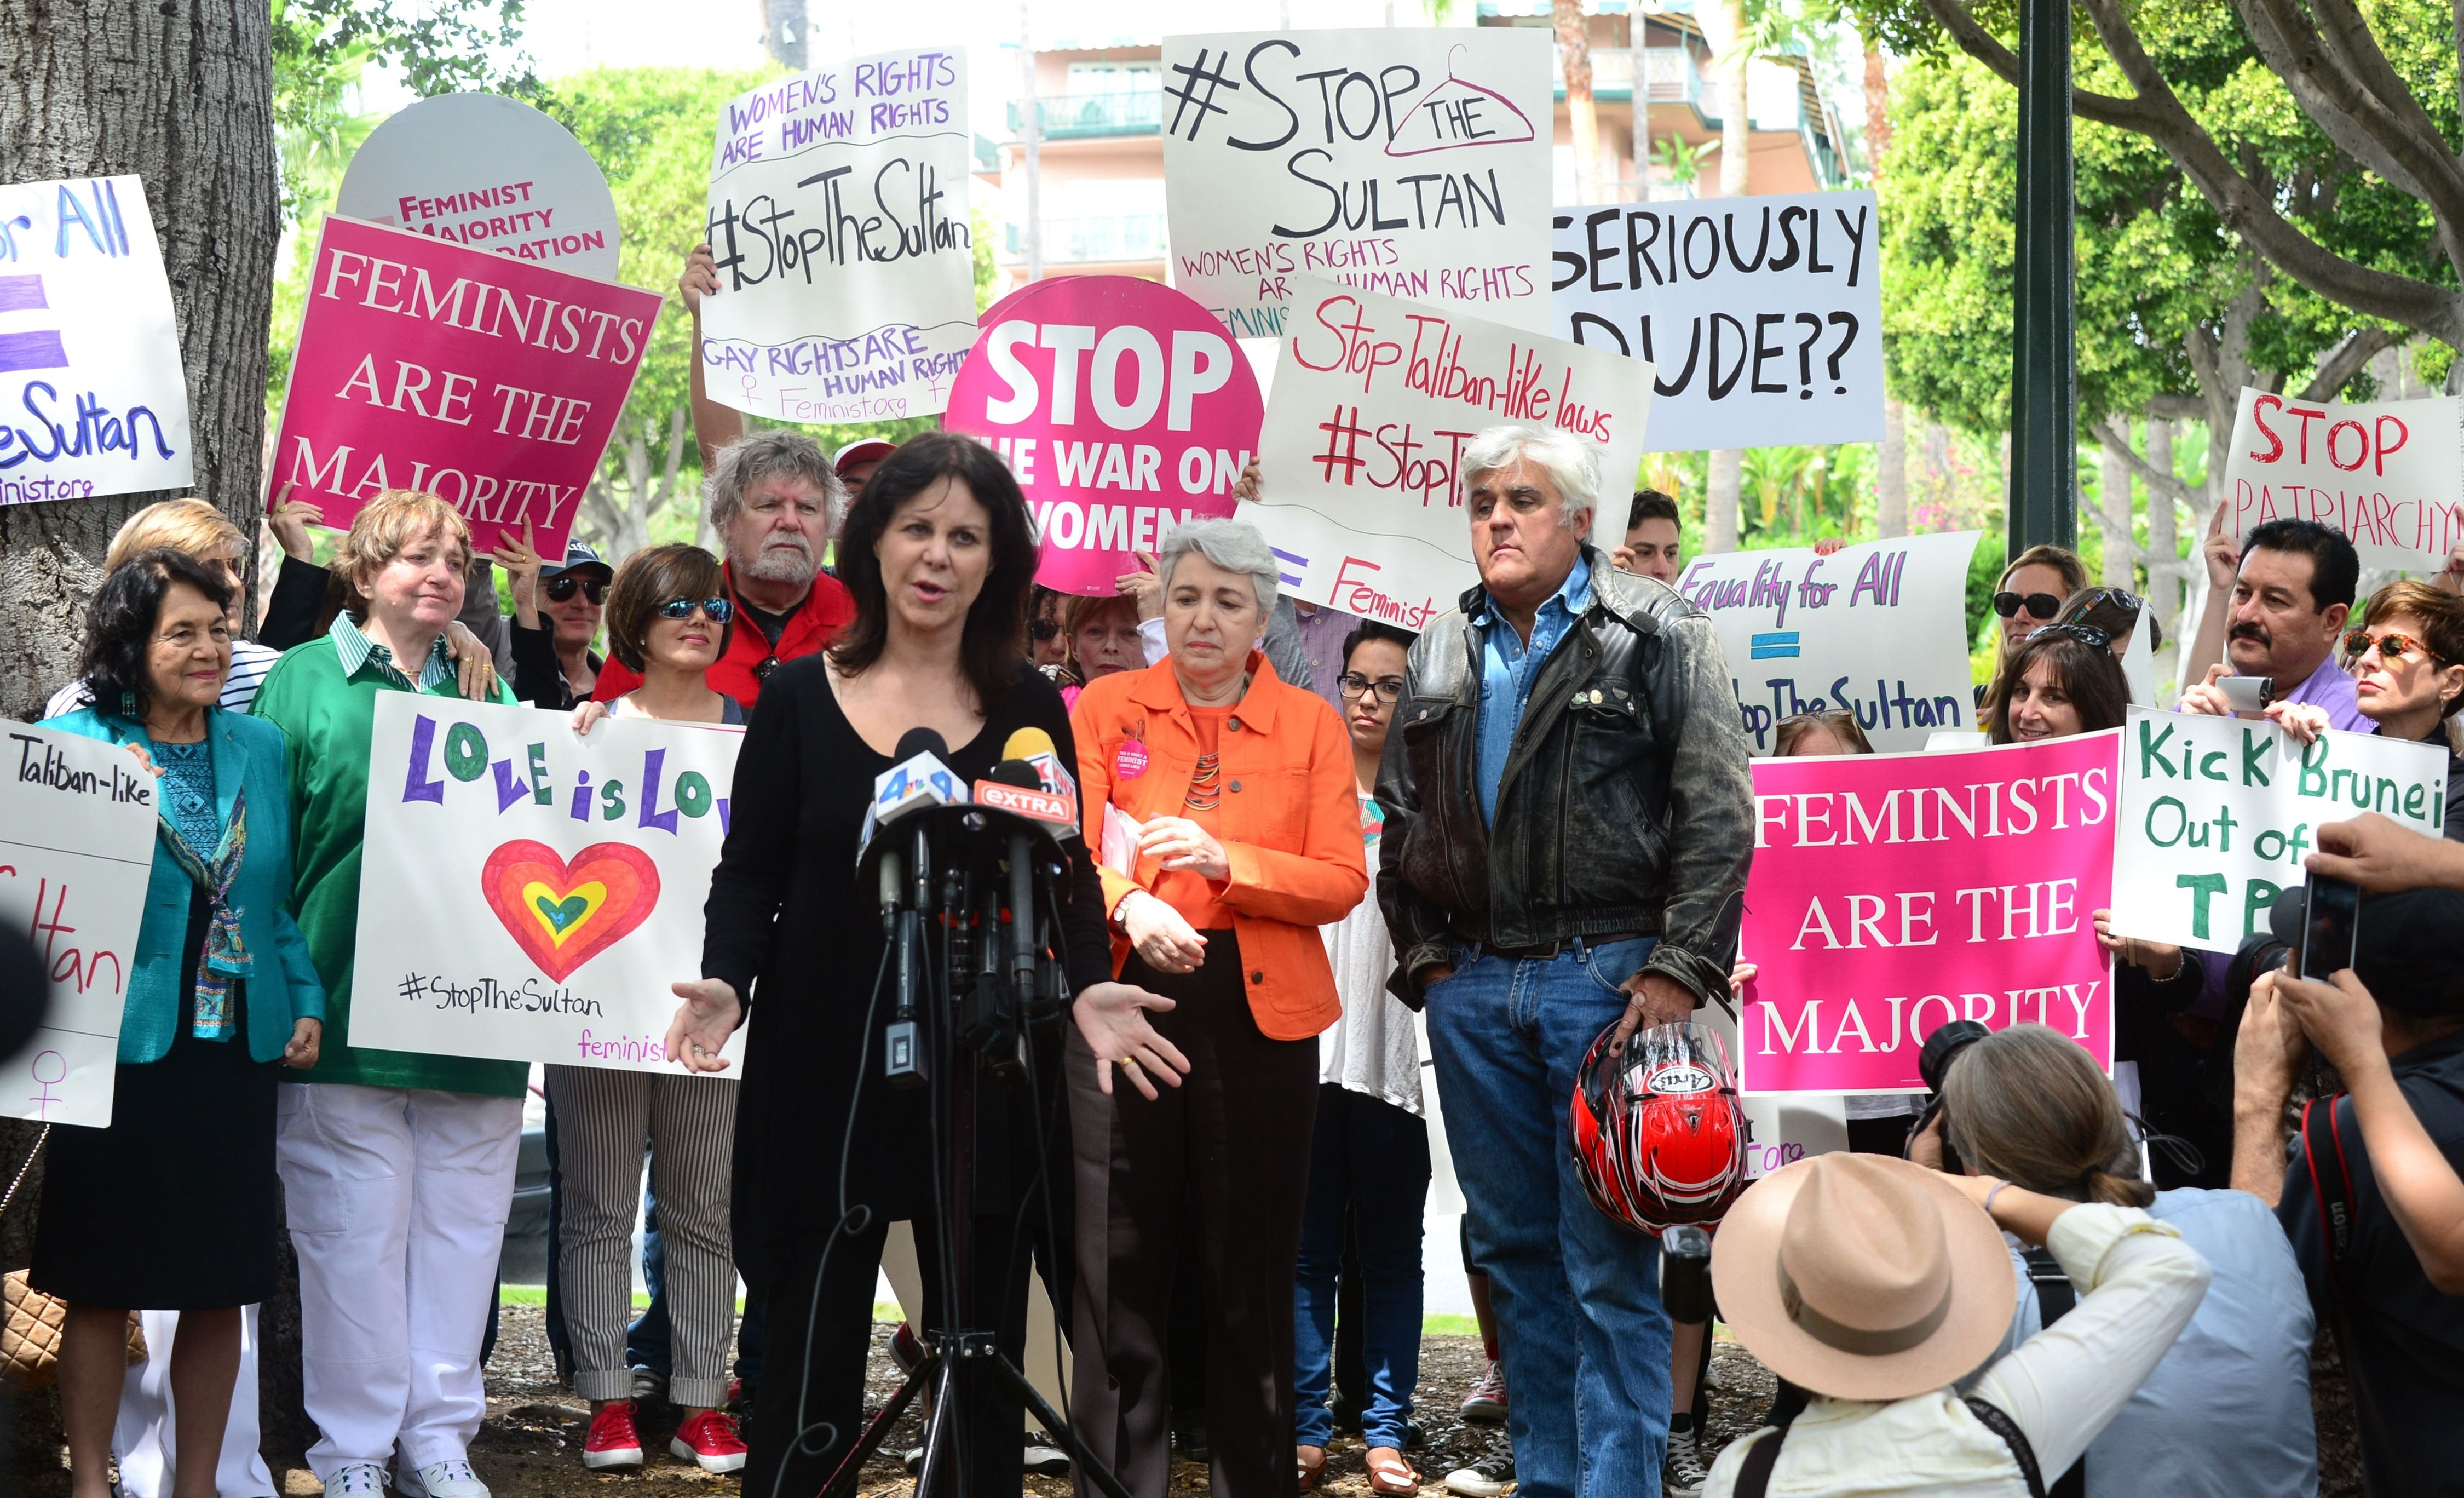 Jay Leno watches as his wife Mavis speaks to supporters of women's rights and LGBT groups at a protest across from the Beverly Hills Hotel, owned by the Sultan of Brunei, on May 5, 2014 in Beverly Hills, Calif.